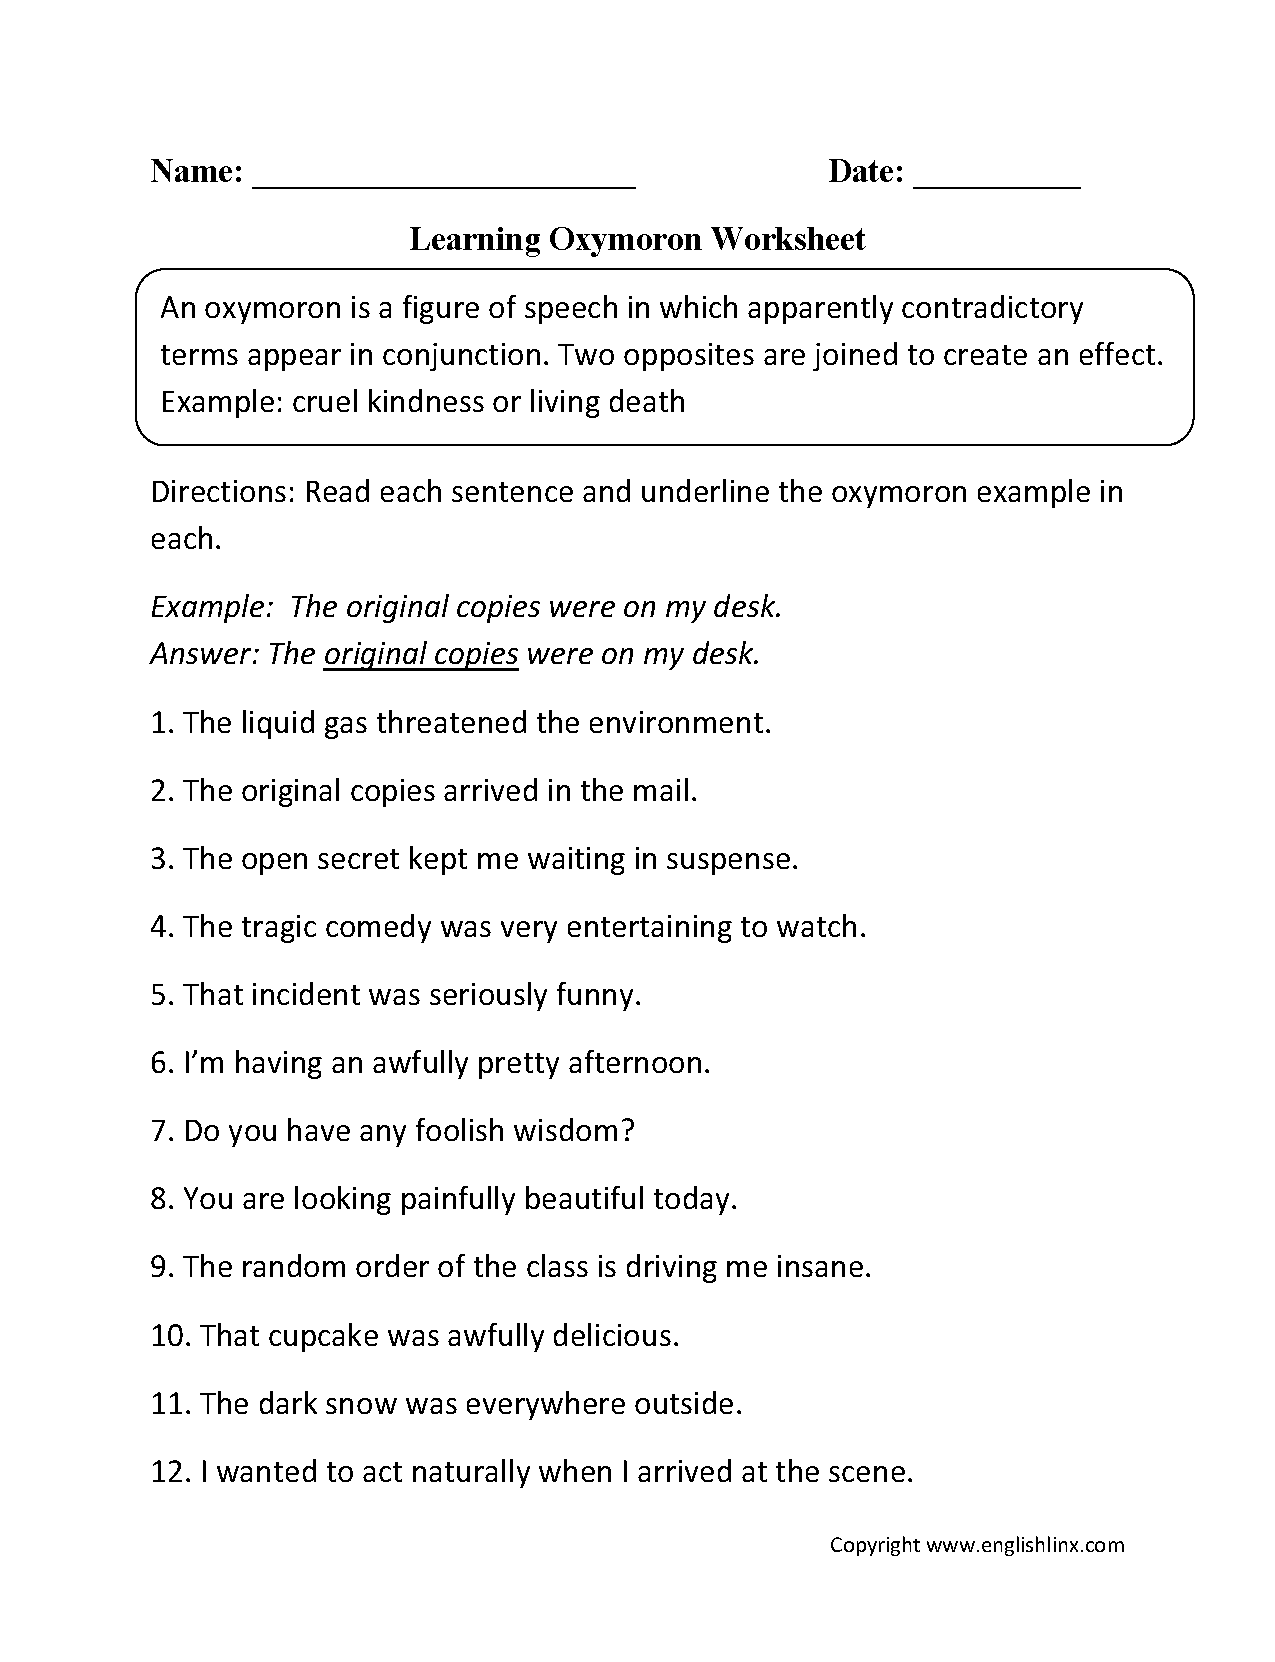 Content by Subject Worksheets   Figurative Language Worksheets   Figurative  language worksheet [ 1662 x 1275 Pixel ]